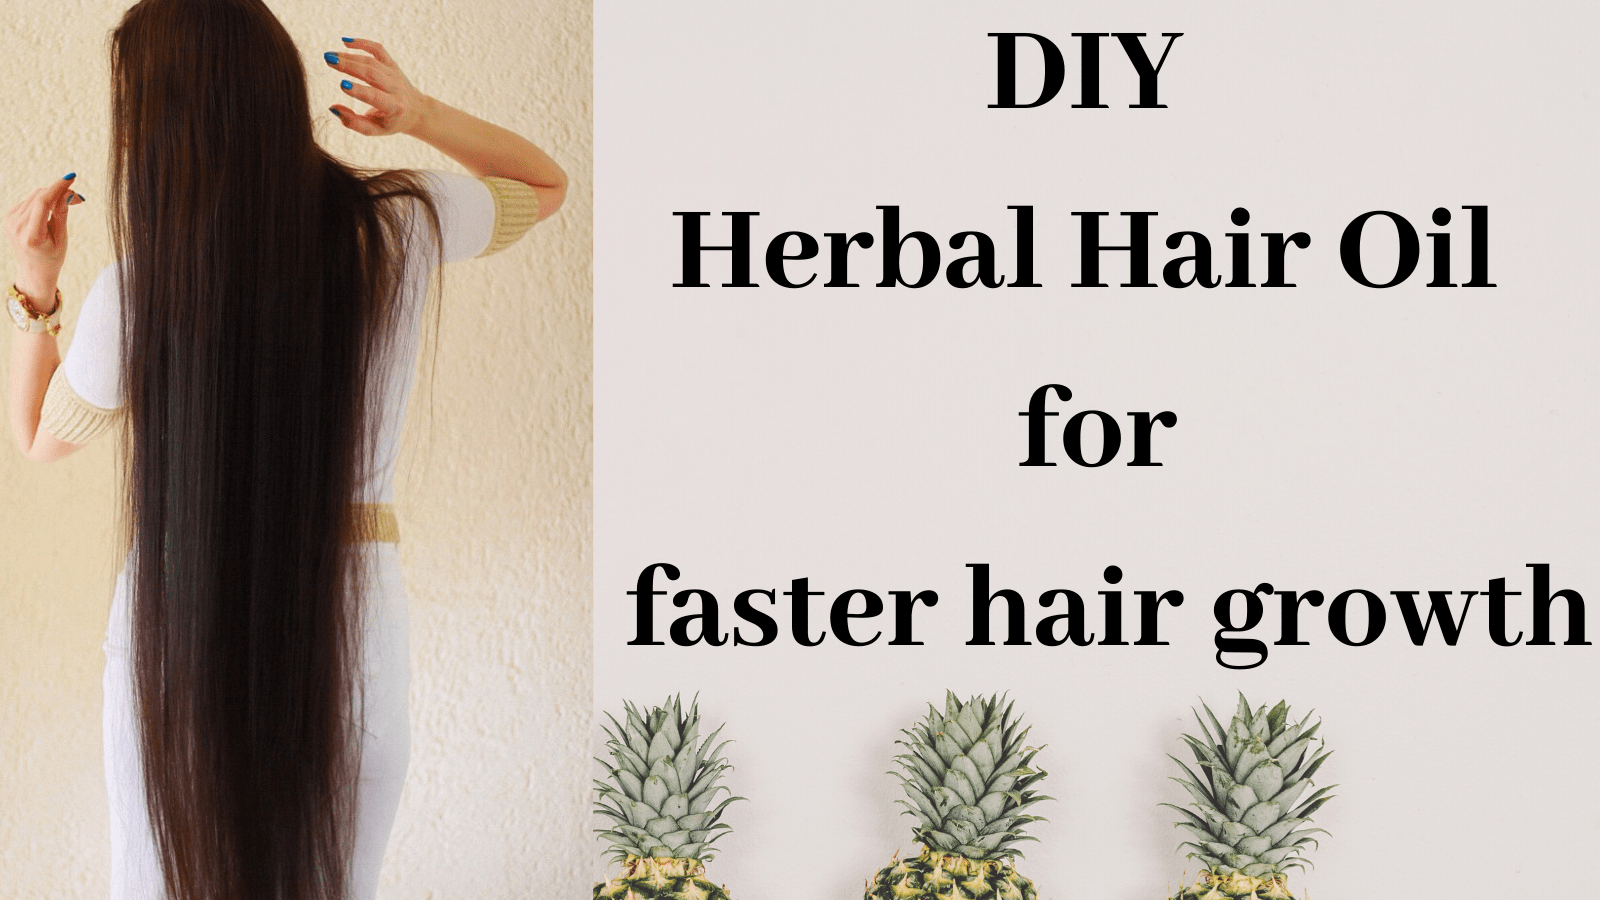 DIY Herbal Hair oil for faster hair growth and how to use it.